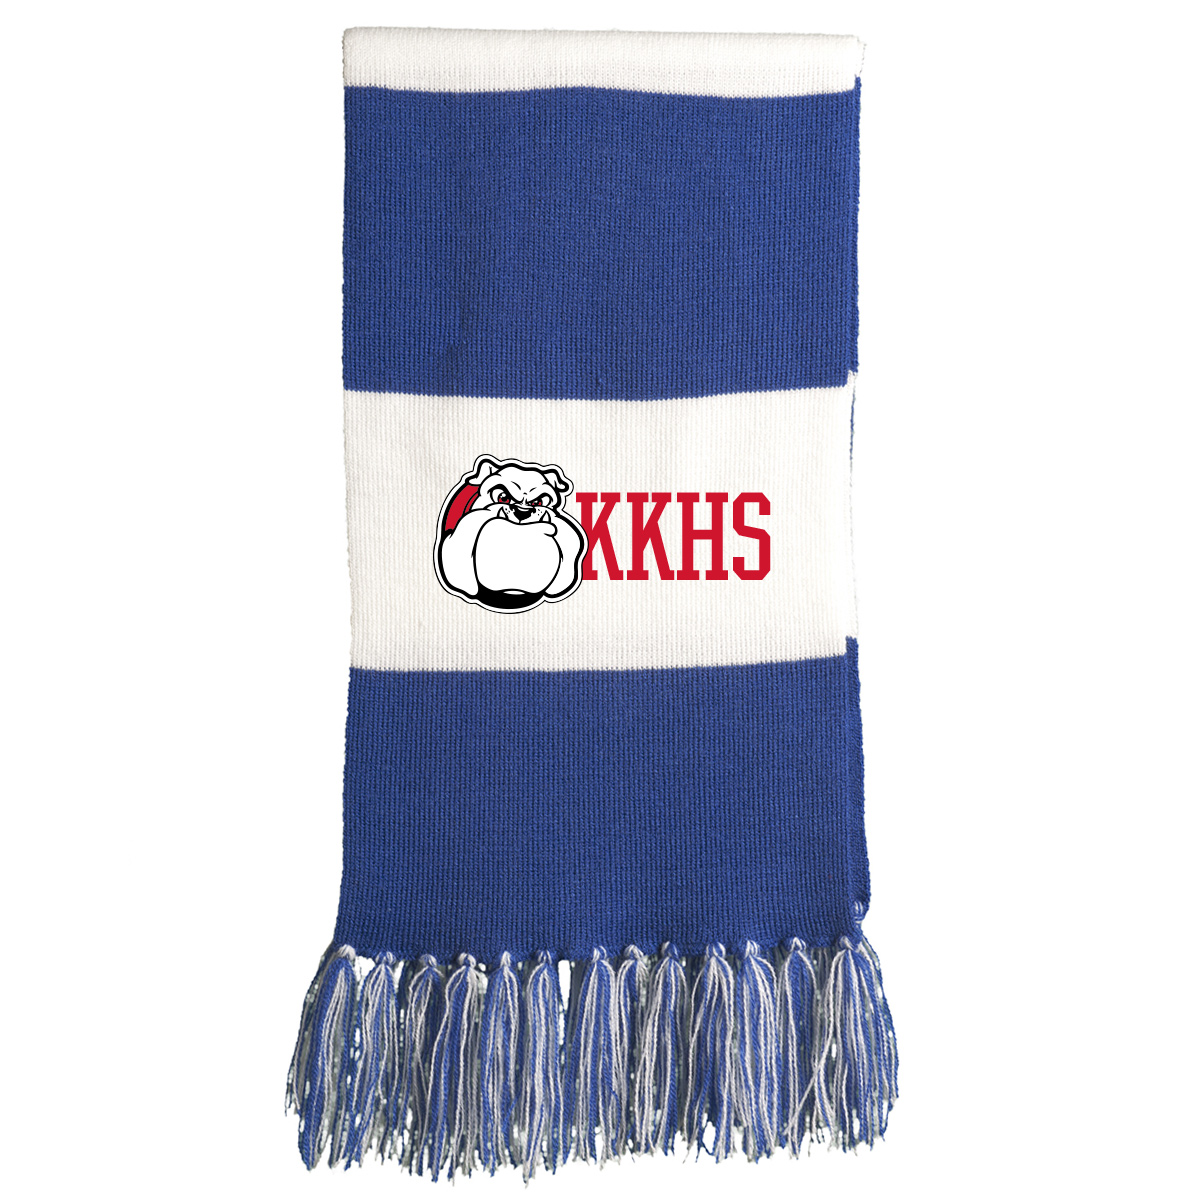 Kennedy Krieger High School Spectator Scarf - Royal/White